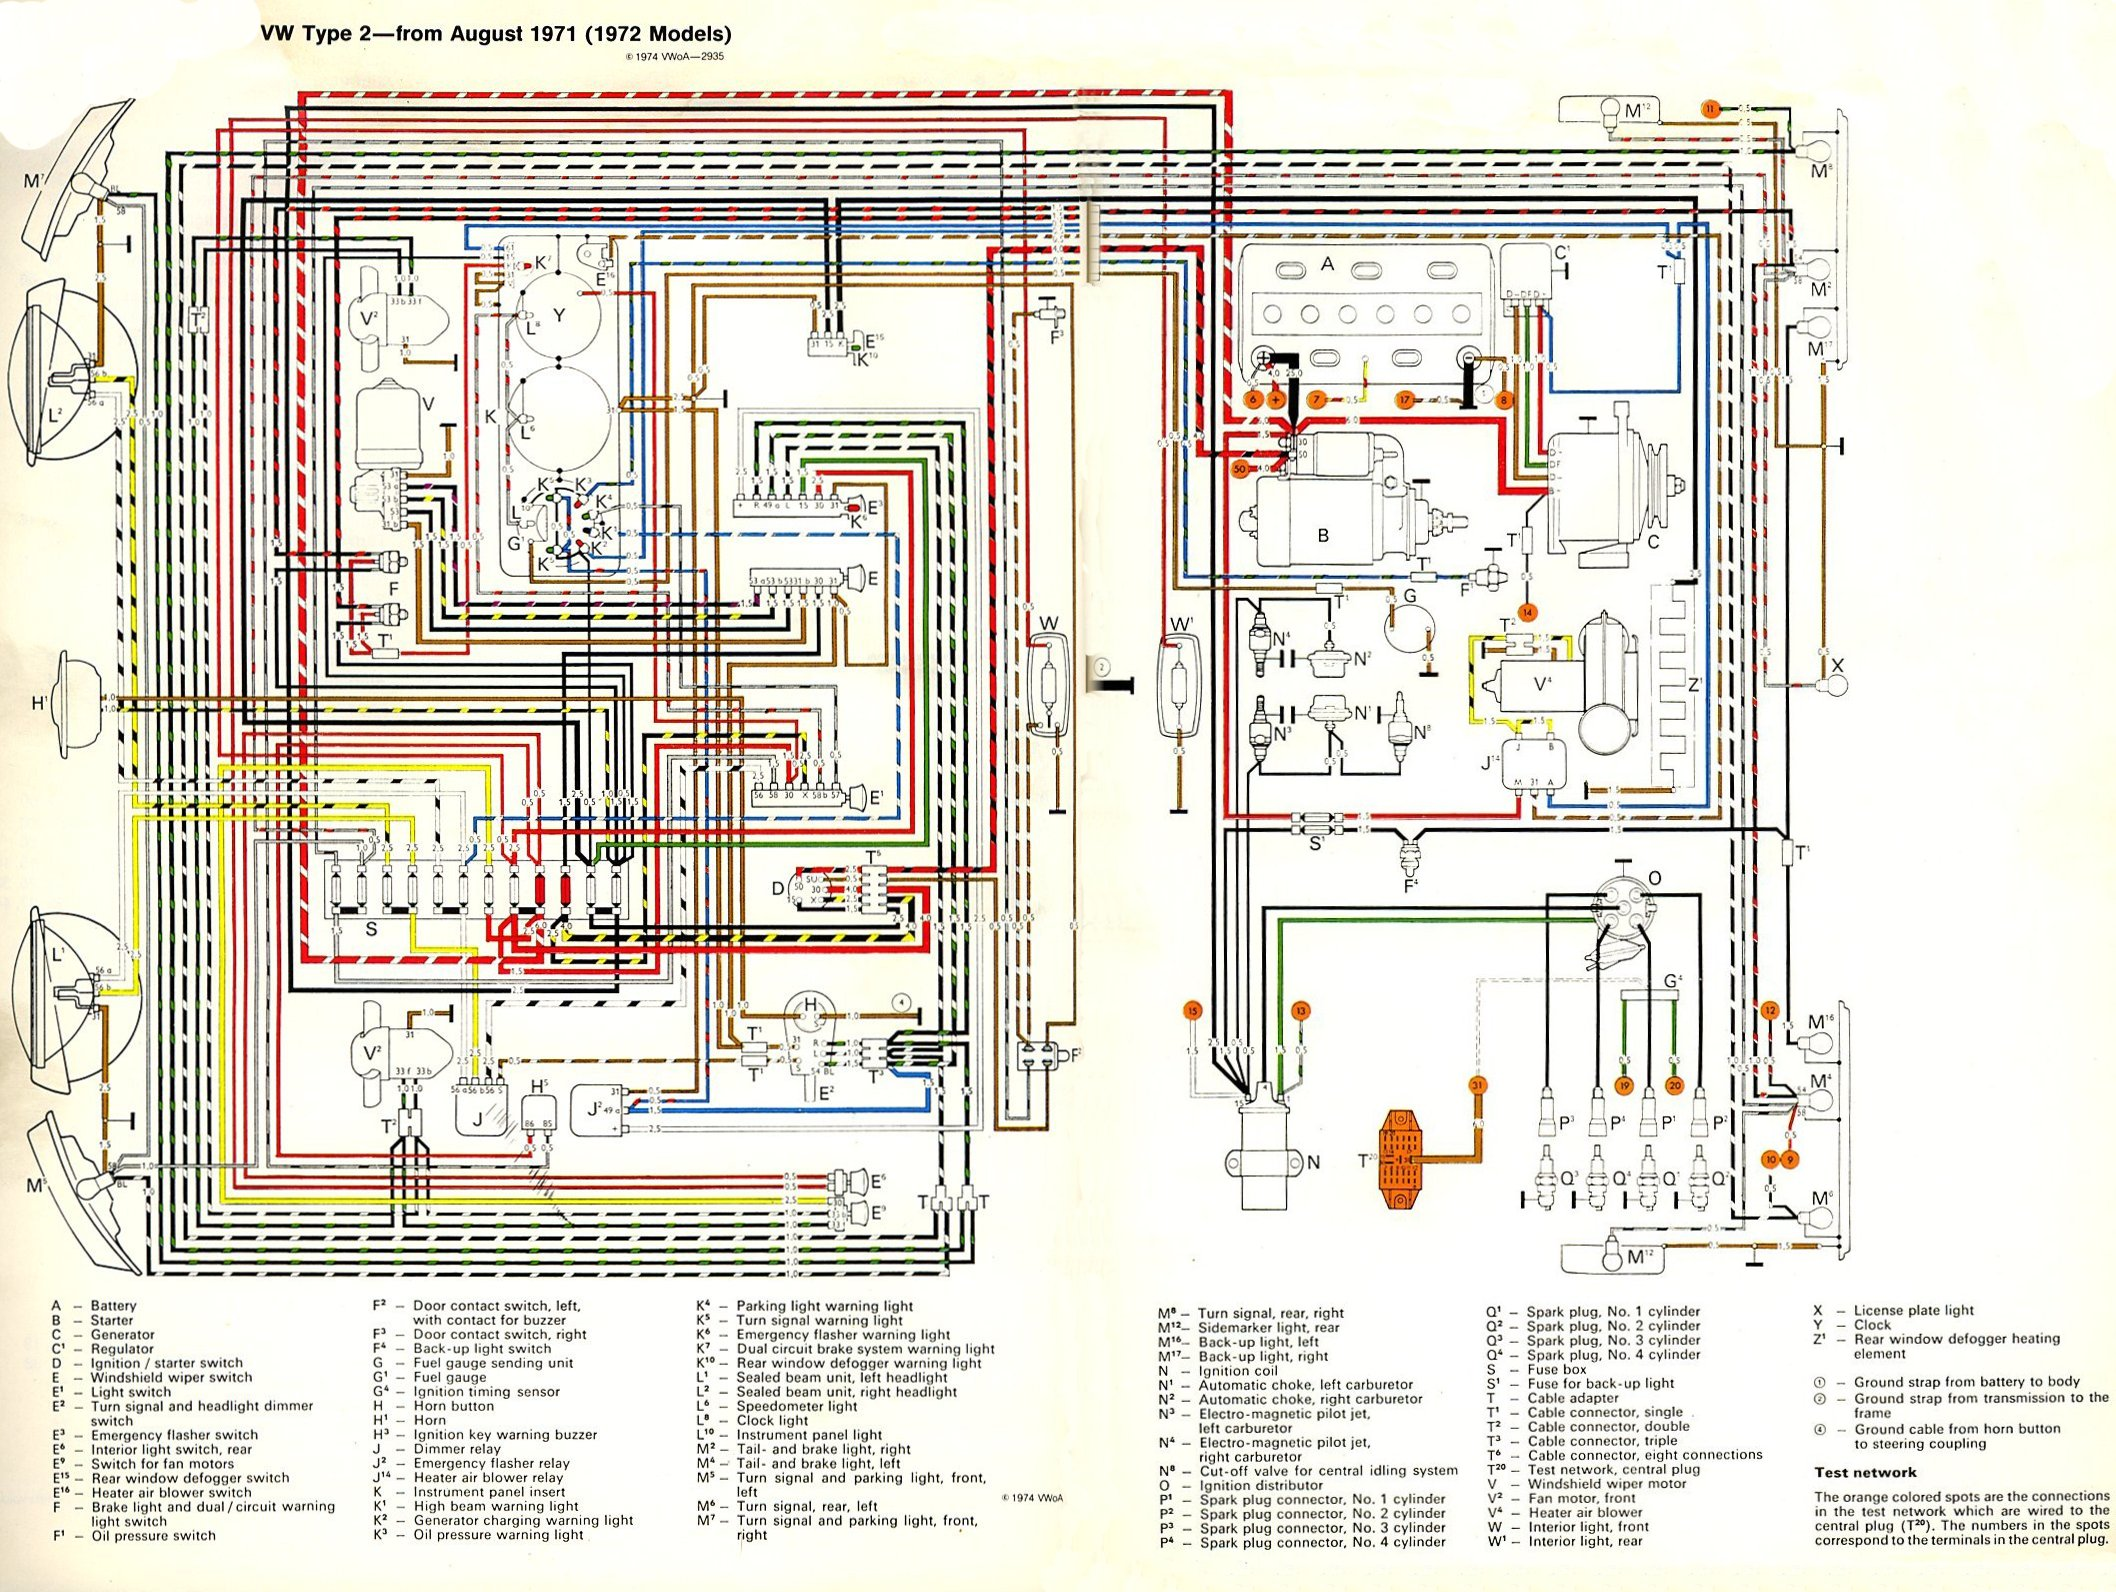 bus_1972_wiring 1972 corvette wiring diagram 1972 corvette ac wiring diagram Wiring Harness Diagram at mifinder.co